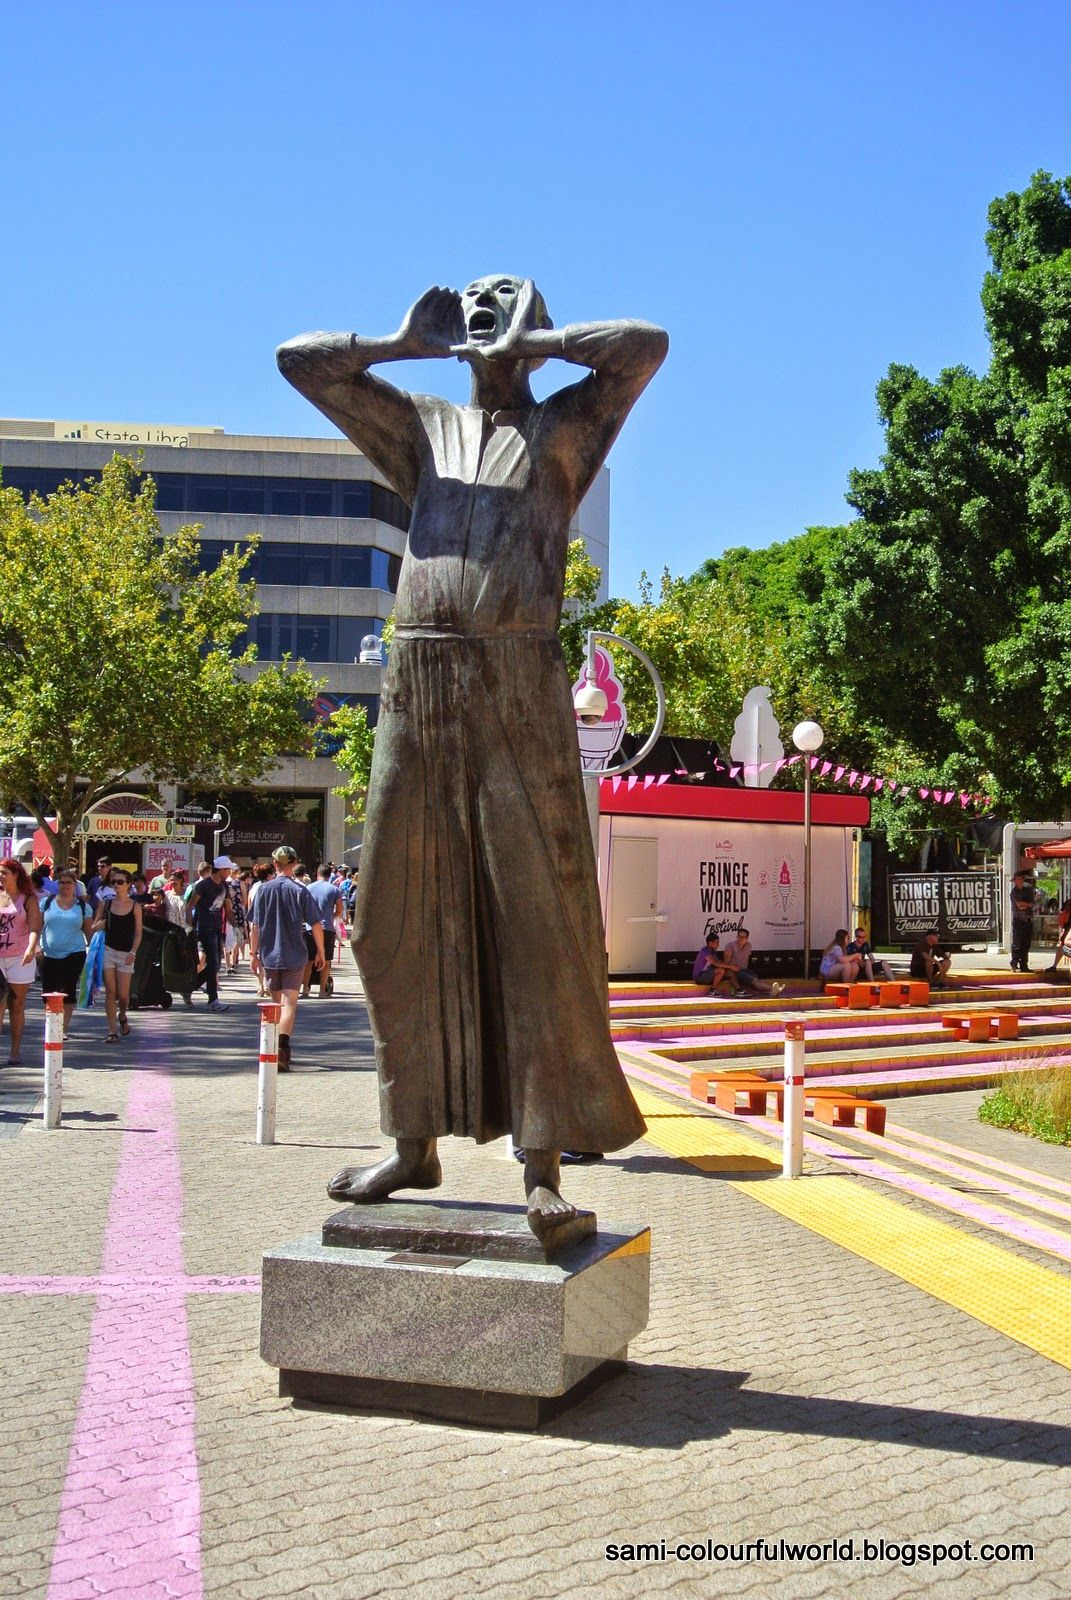 sami's colourfulworld: Public Art Perth